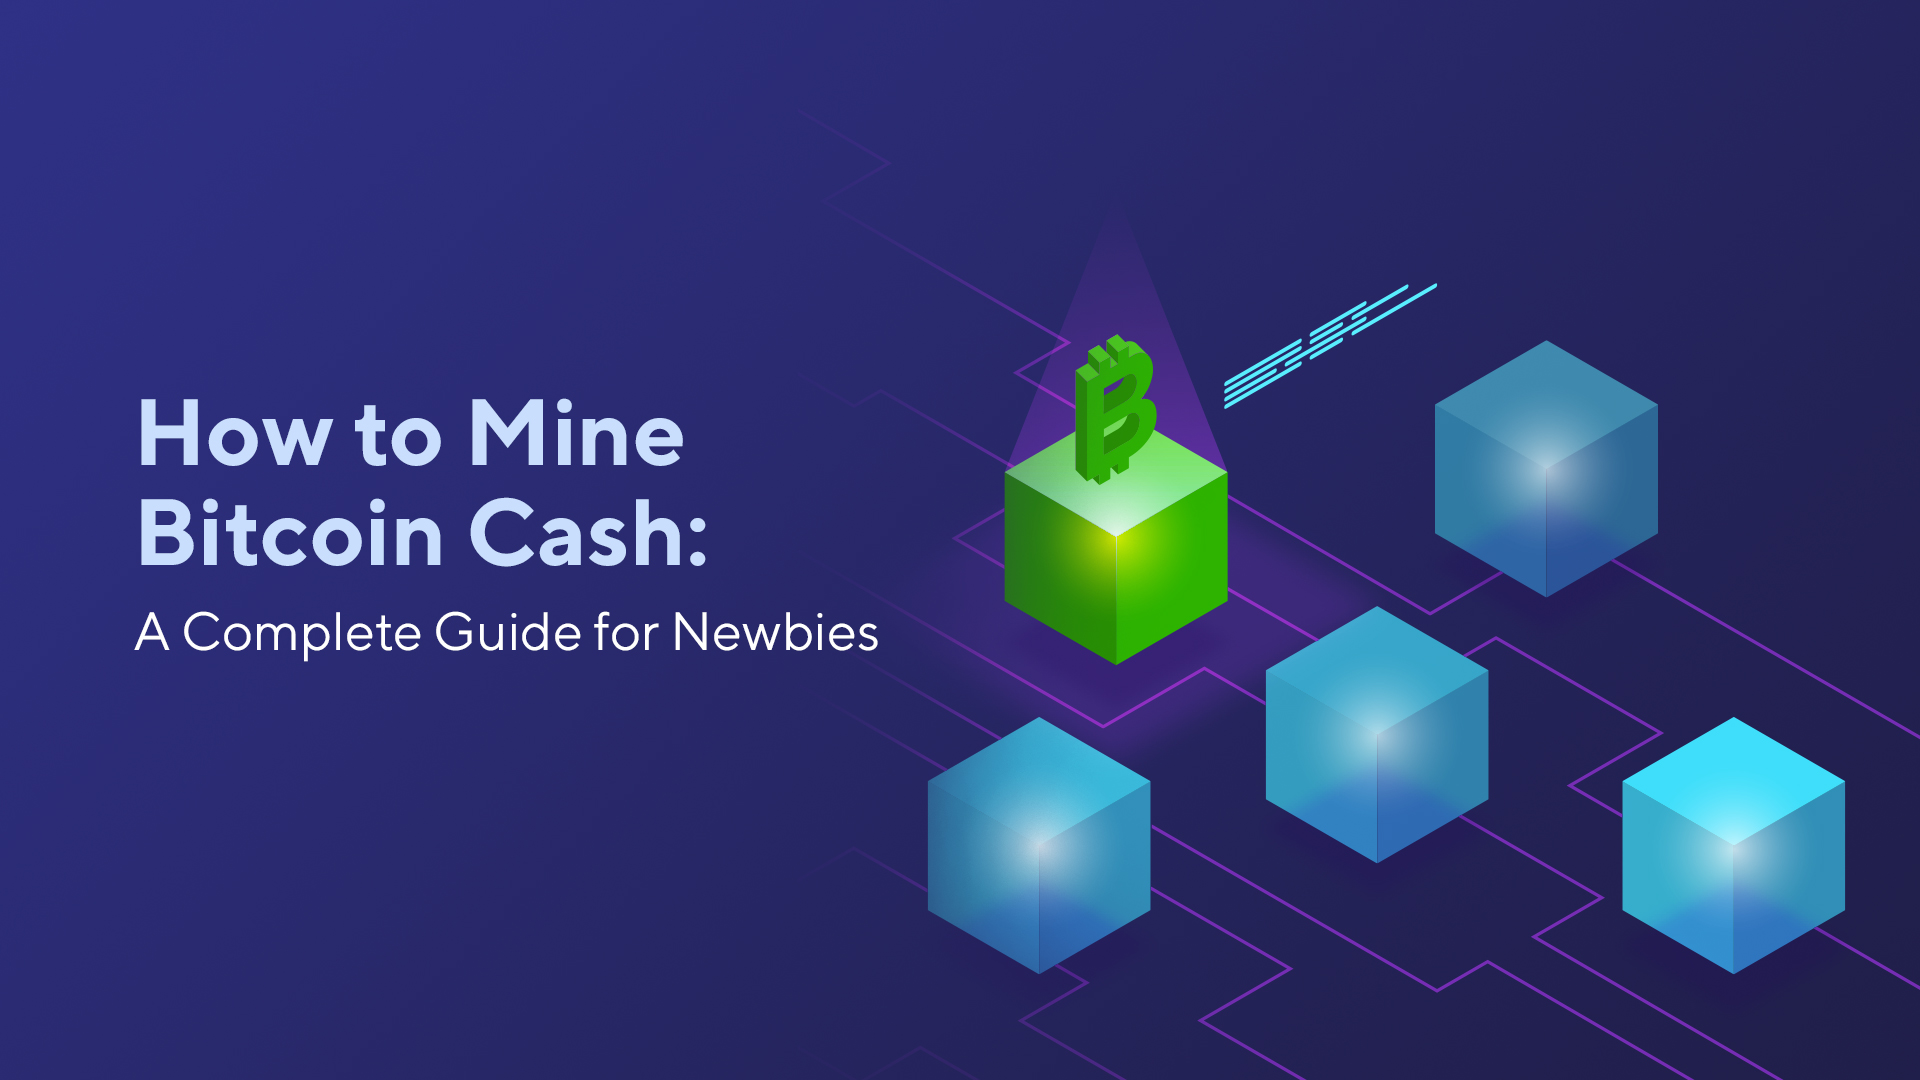 How to Mine Bitcoin Cash: A Complete Guide for Newbies